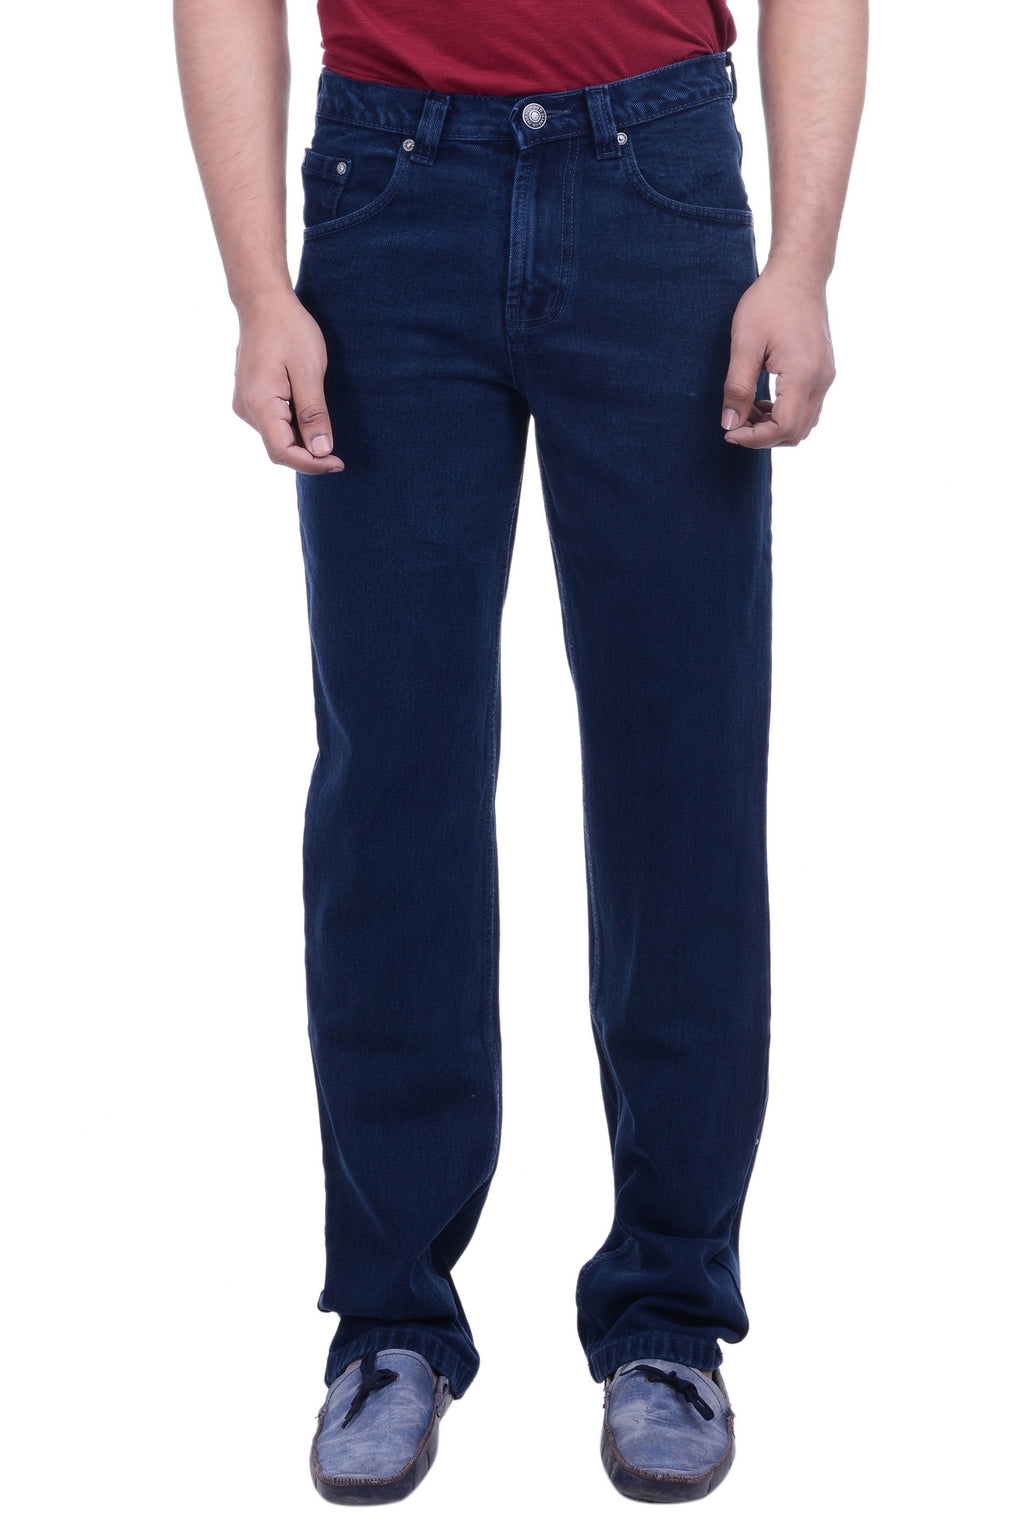 Hoffmen Regular Fit SAPHIRE BLUE Men's Jeans EDG2909